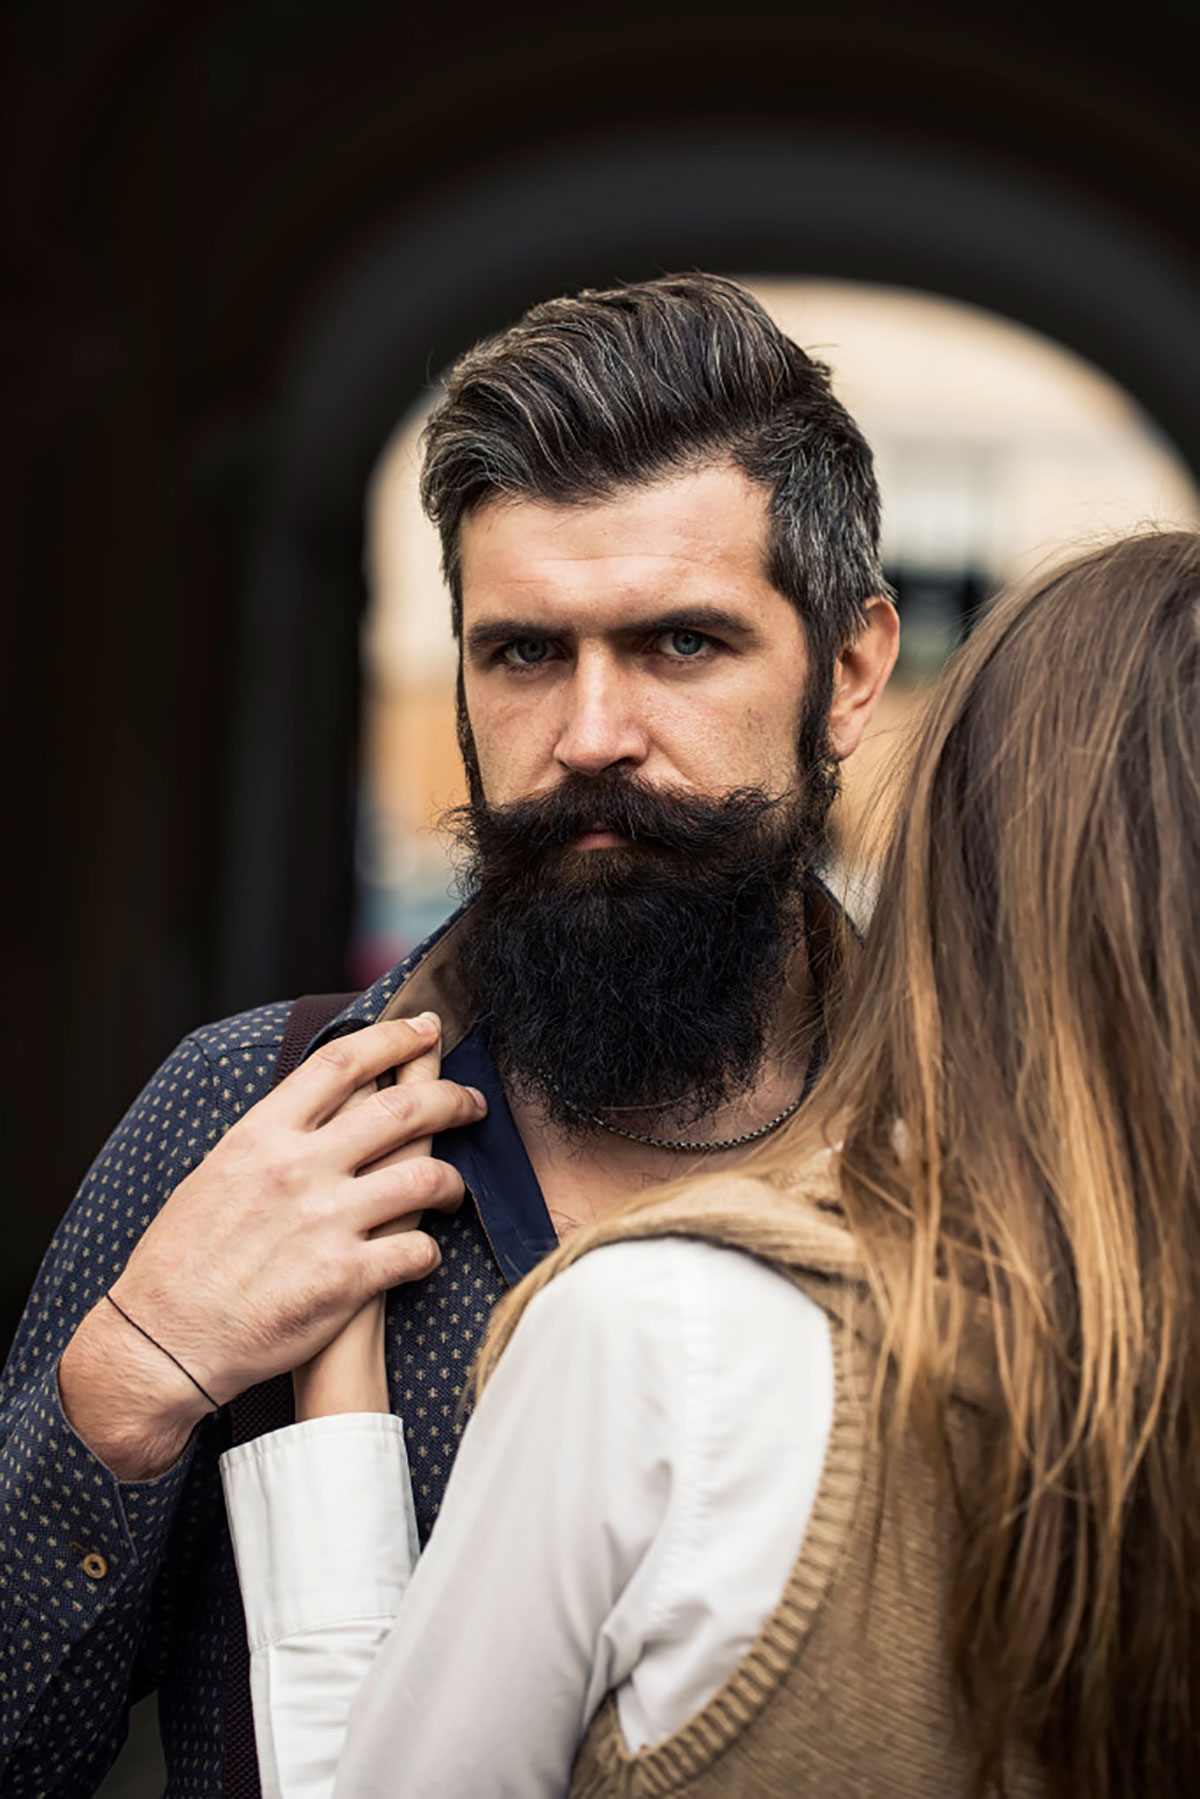 Law of Attraction: Beards Can Give You a Better Jawline